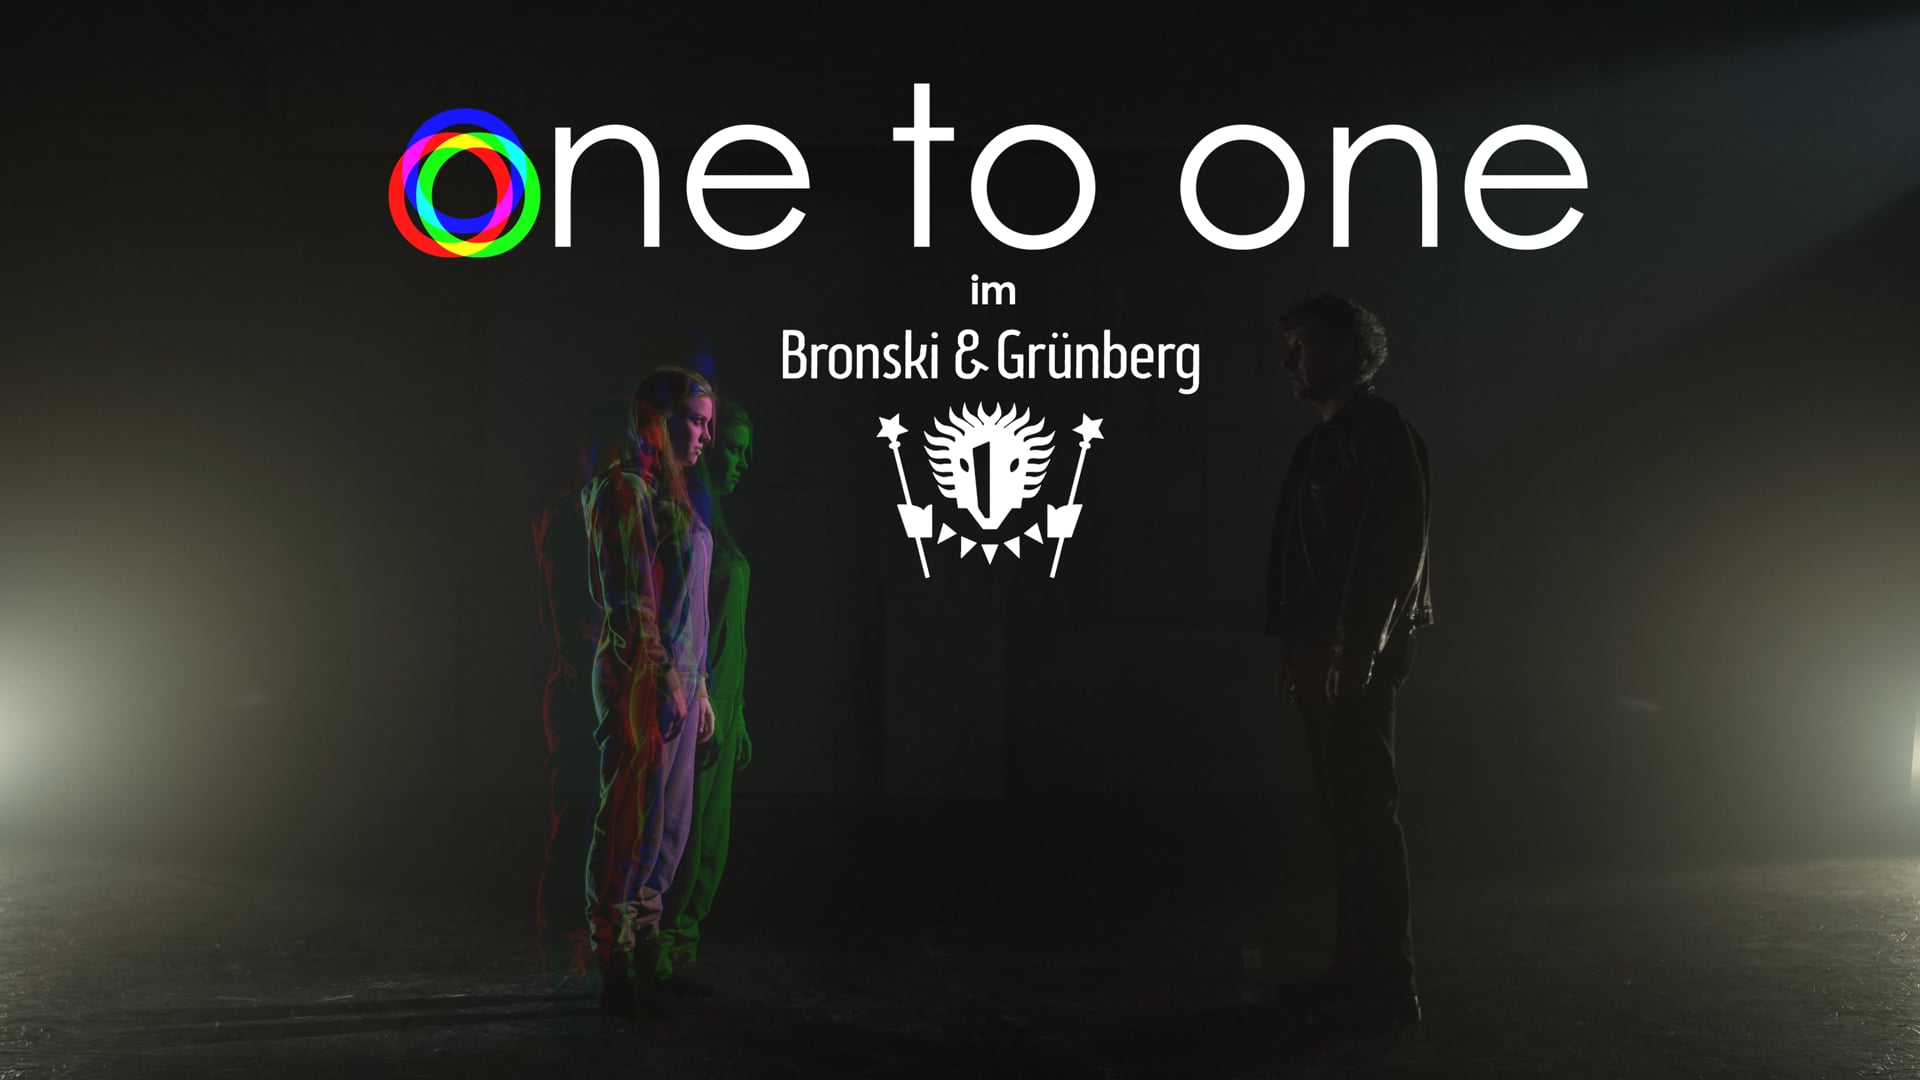 one to one // trailer